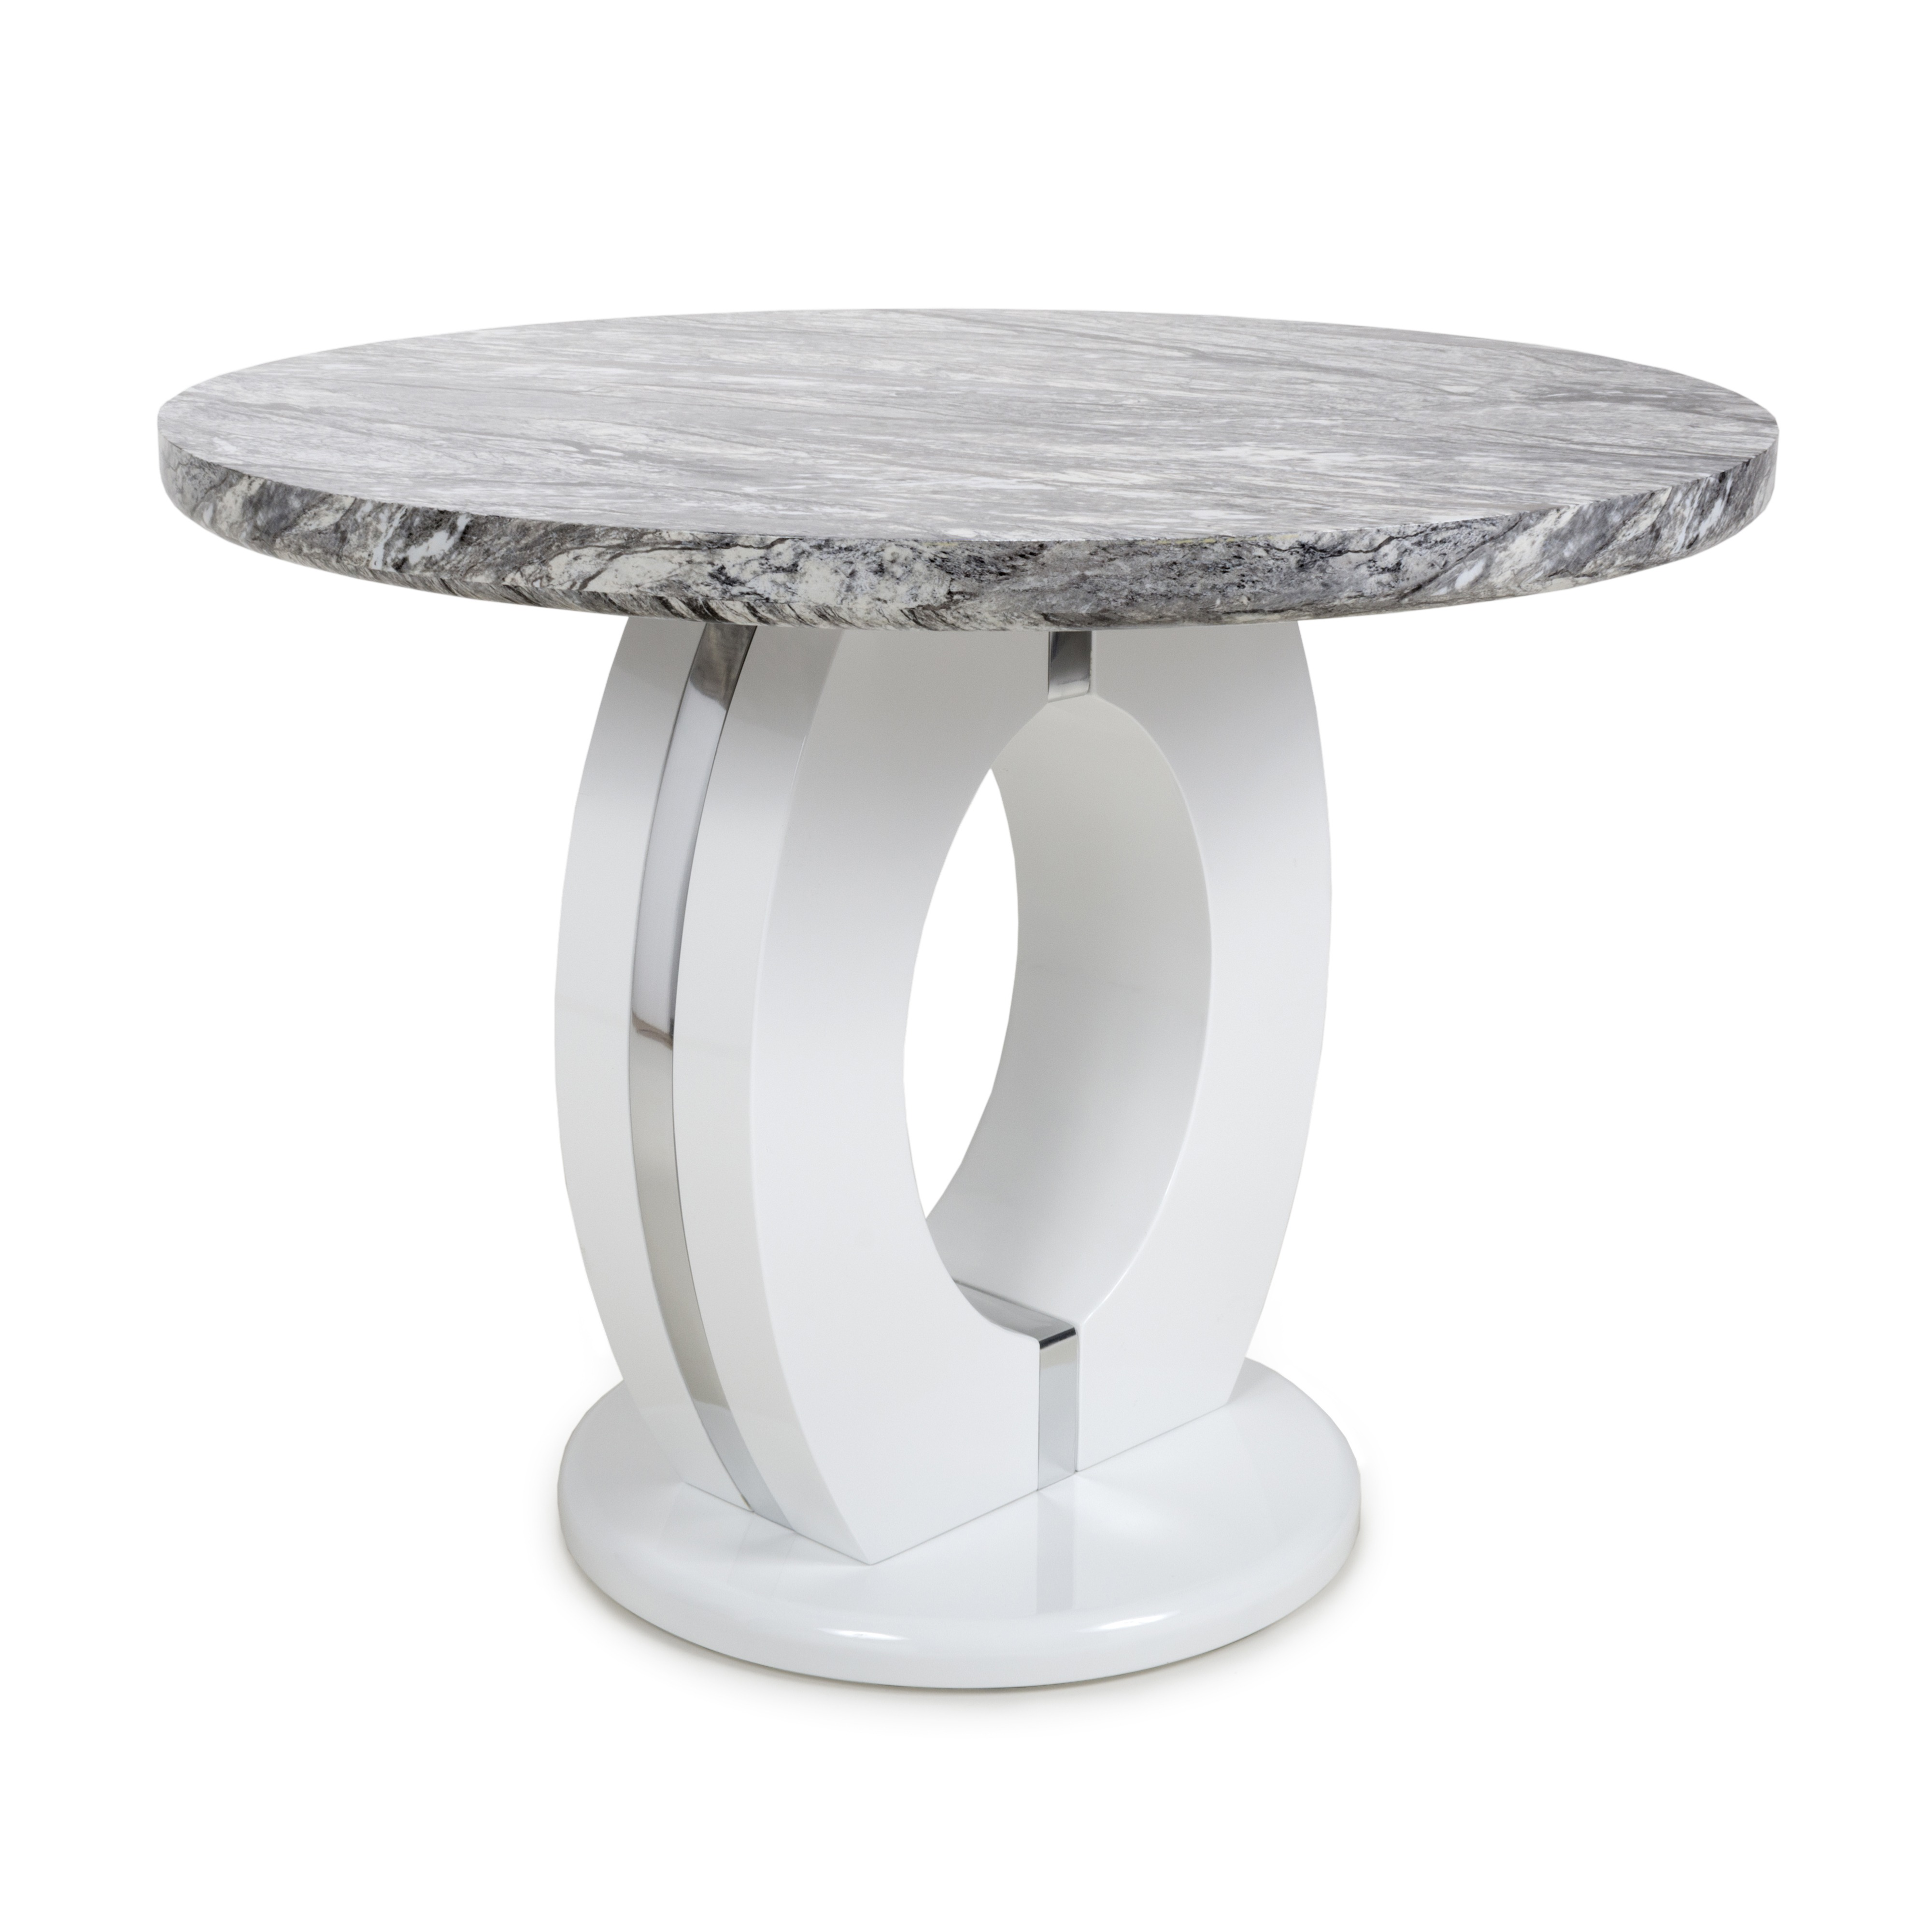 Athena Round Marble Dining table